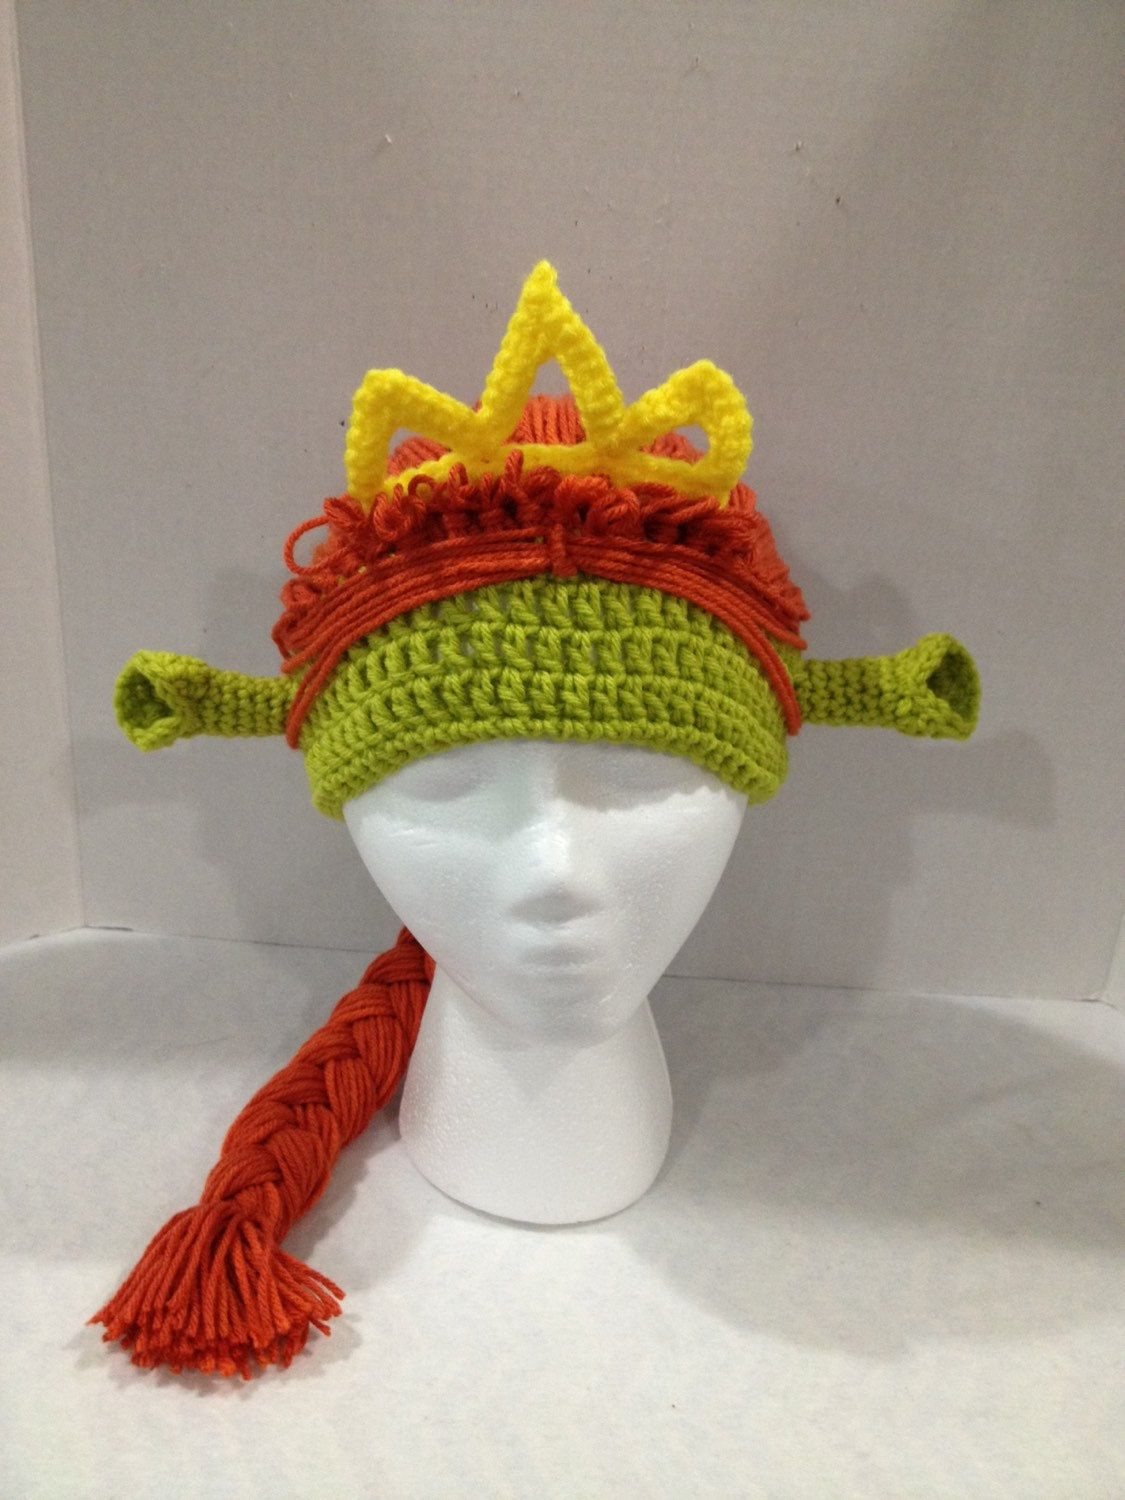 98965f0e9cee Shrek Princess Fiona inspired crochet ogre hat by KaityBugKreations on Etsy  https   www